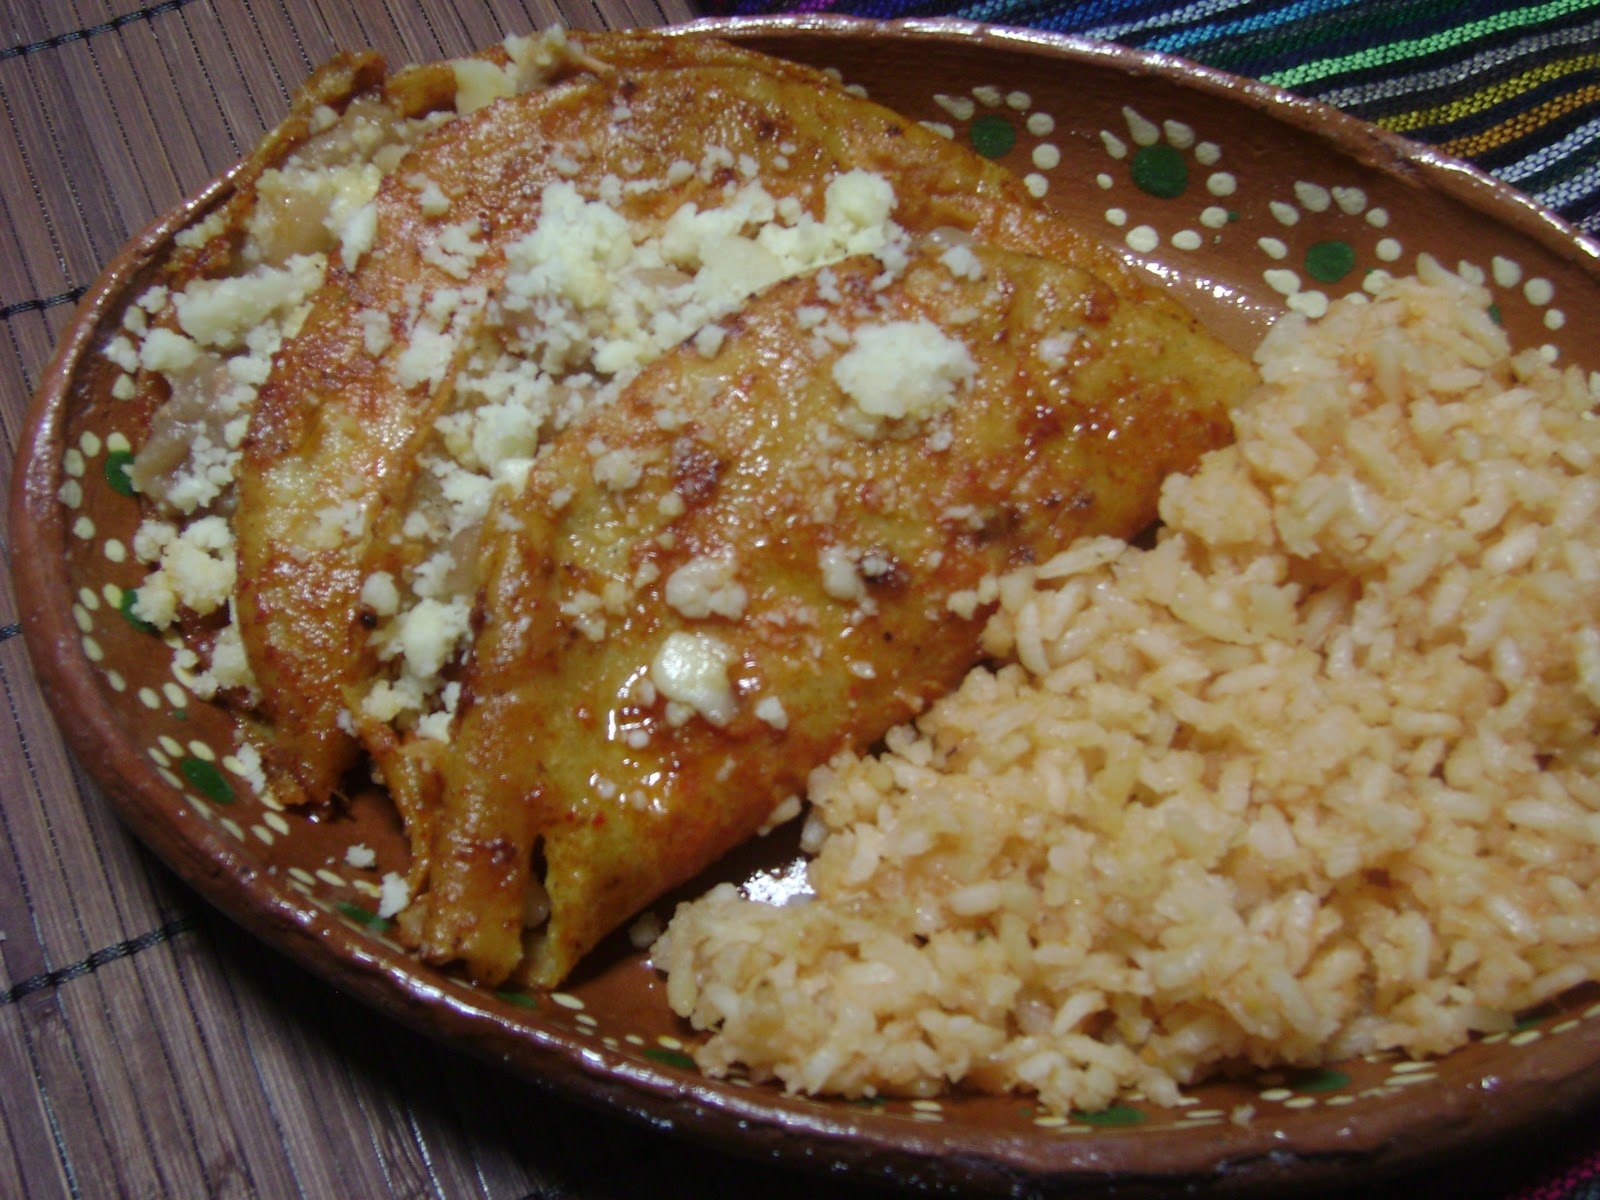 La Cocina de Leslie: Bean and Cheese Enchiladas